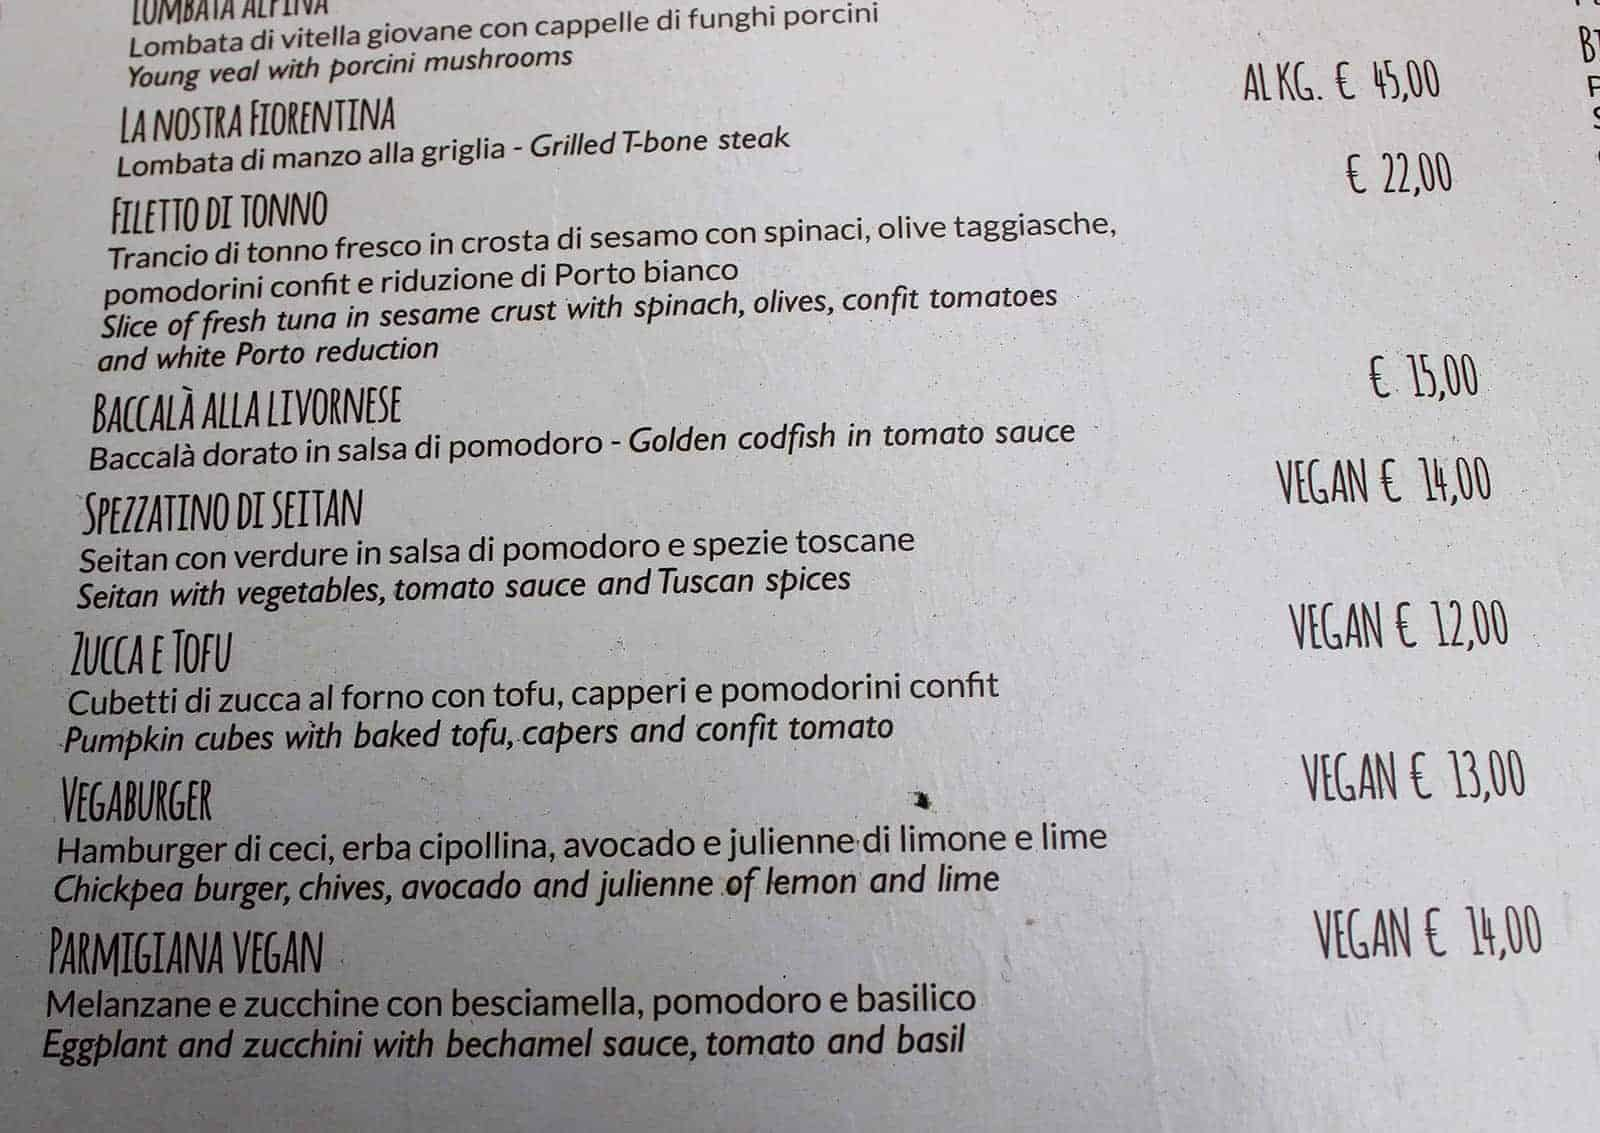 Authentic Tuscan cuisine gone vegan at Konnubio Florence